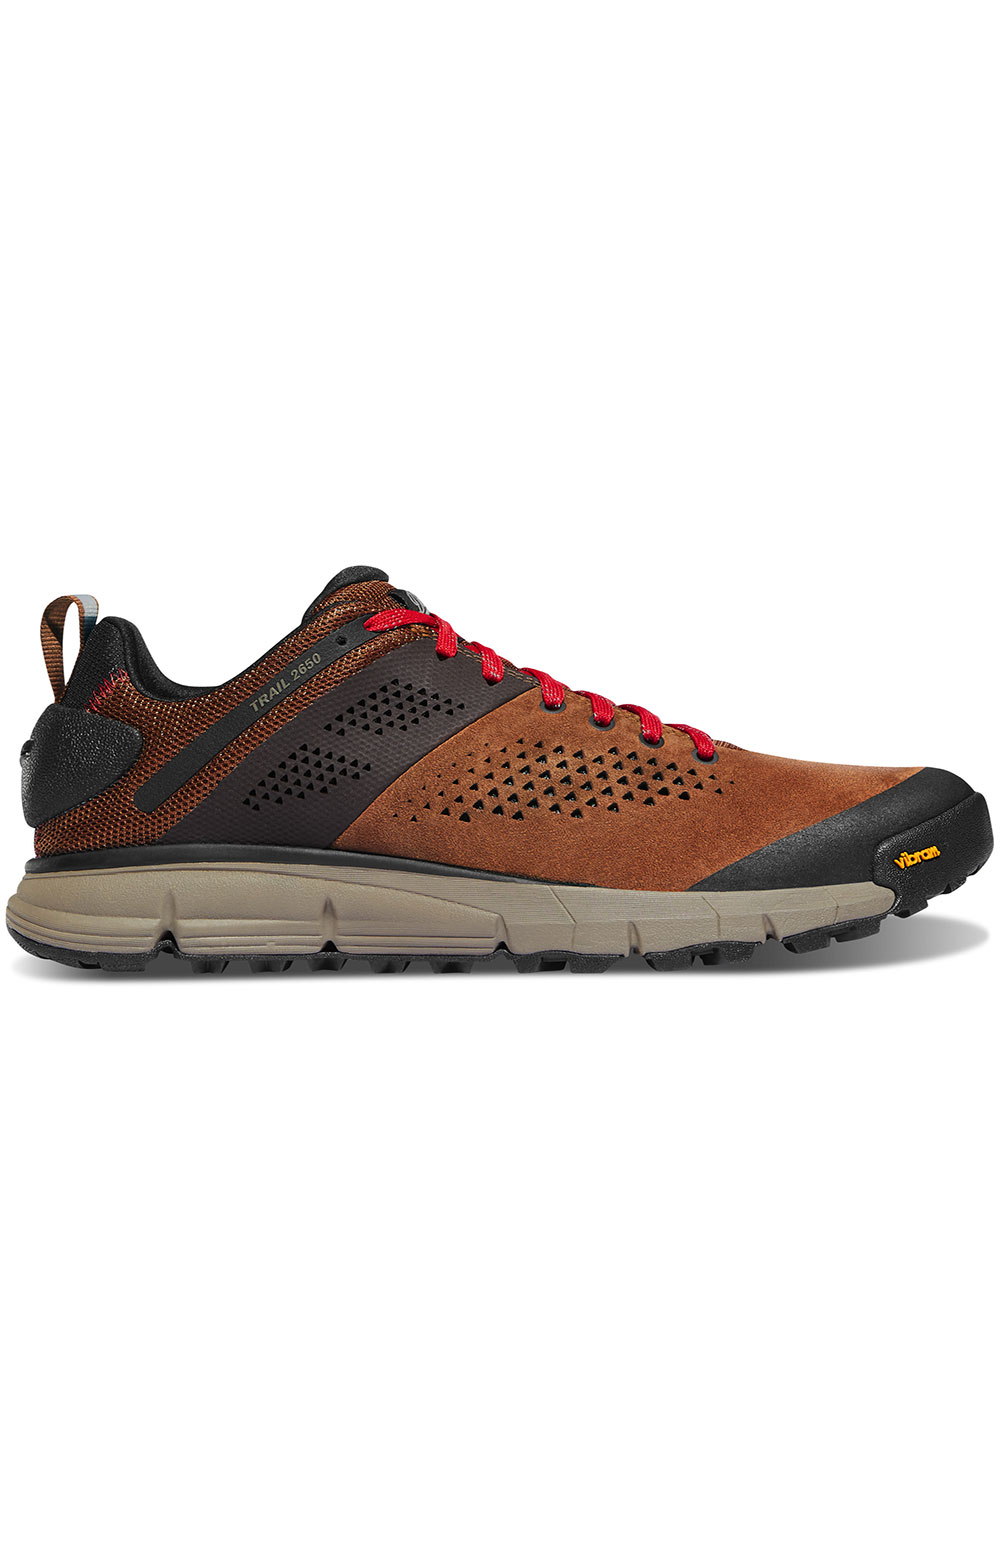 (61272) Trail 2650 Shoes - Brown/Red 4